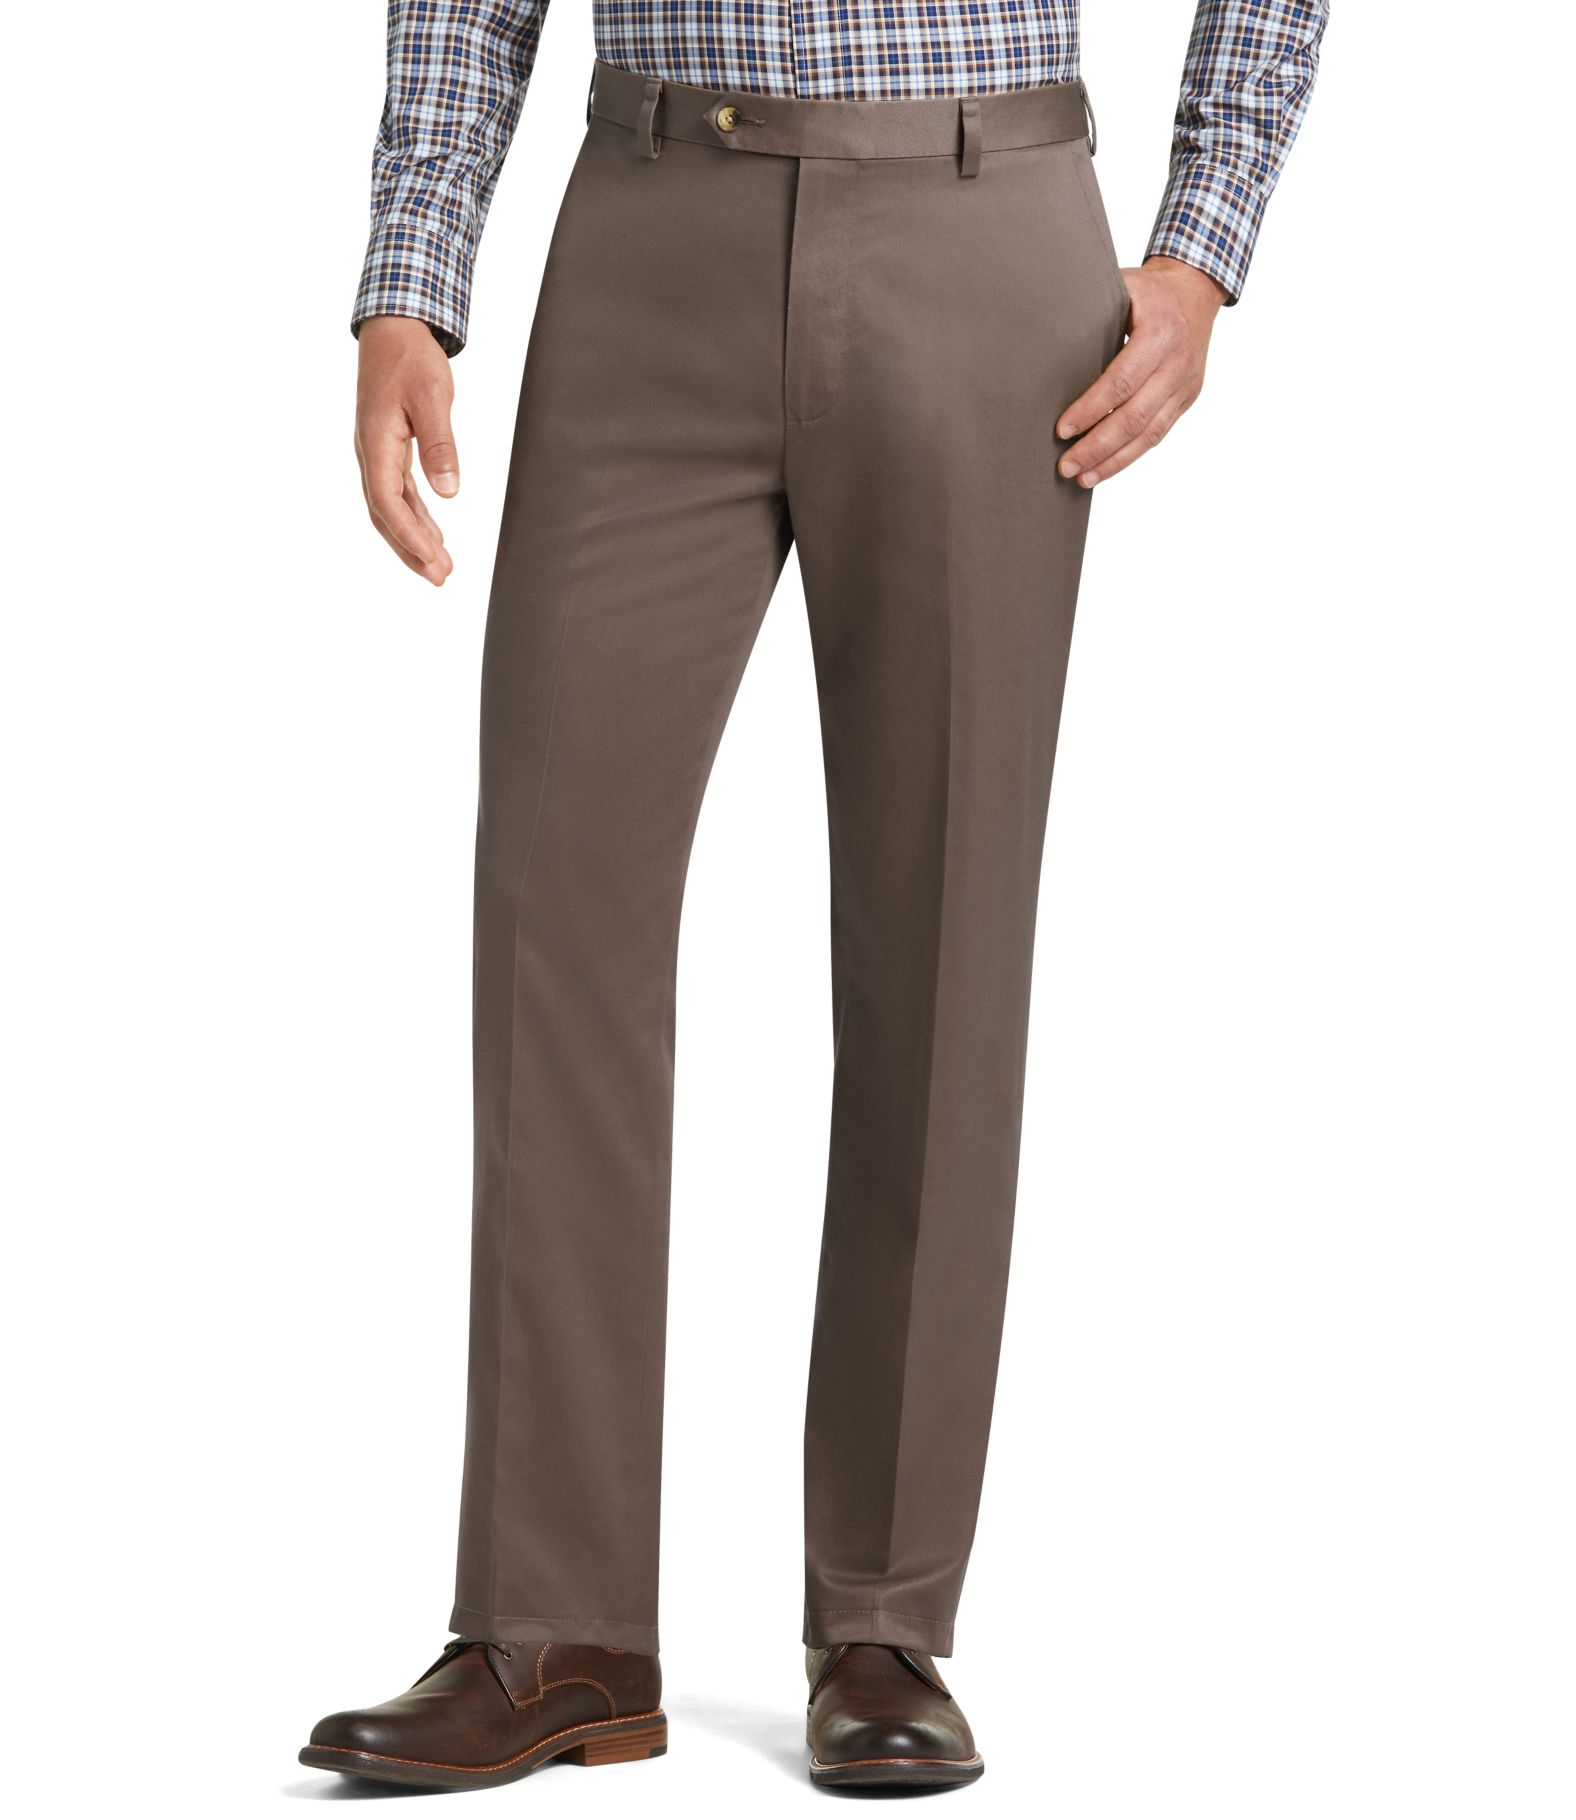 Men's Wrinkle Free Khakis & Twill Pants | Traveler Collection ...